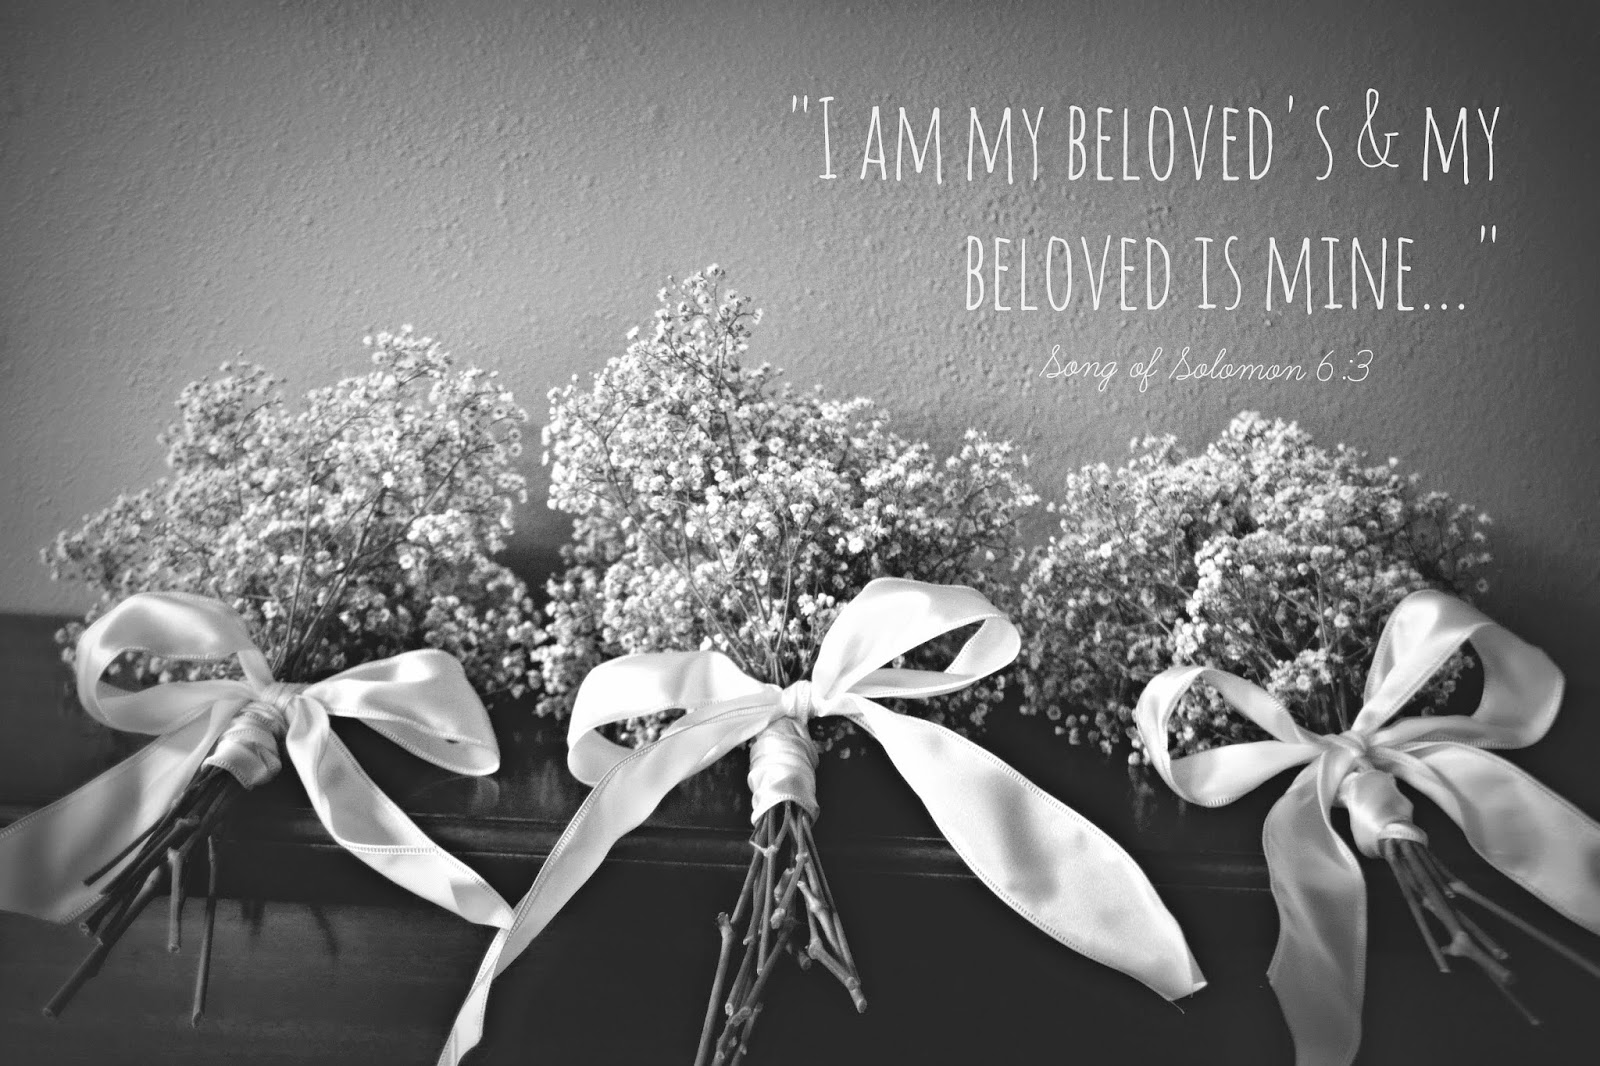 An Old Soul At Home: I Am My Beloved's & He Is Mine